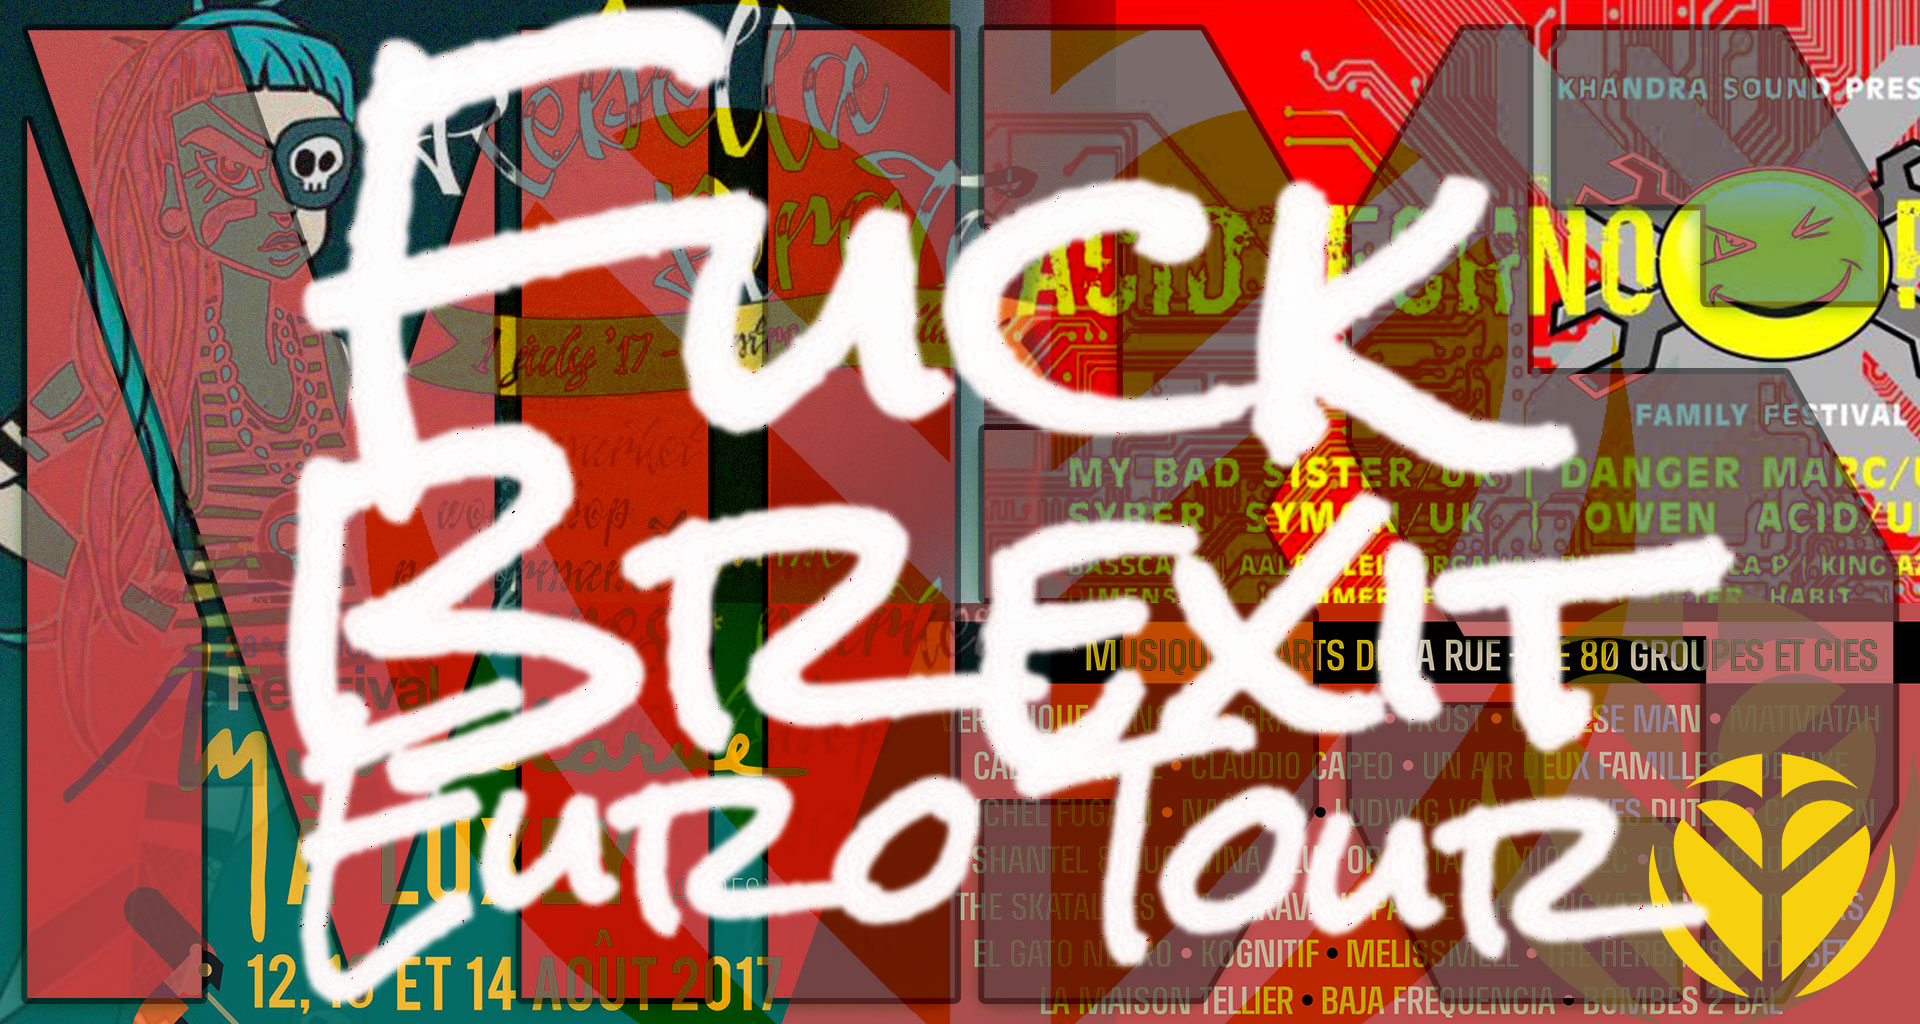 MBS Fuck Brexit Euro Tour / This summer – Italy / Czech / Holland ...